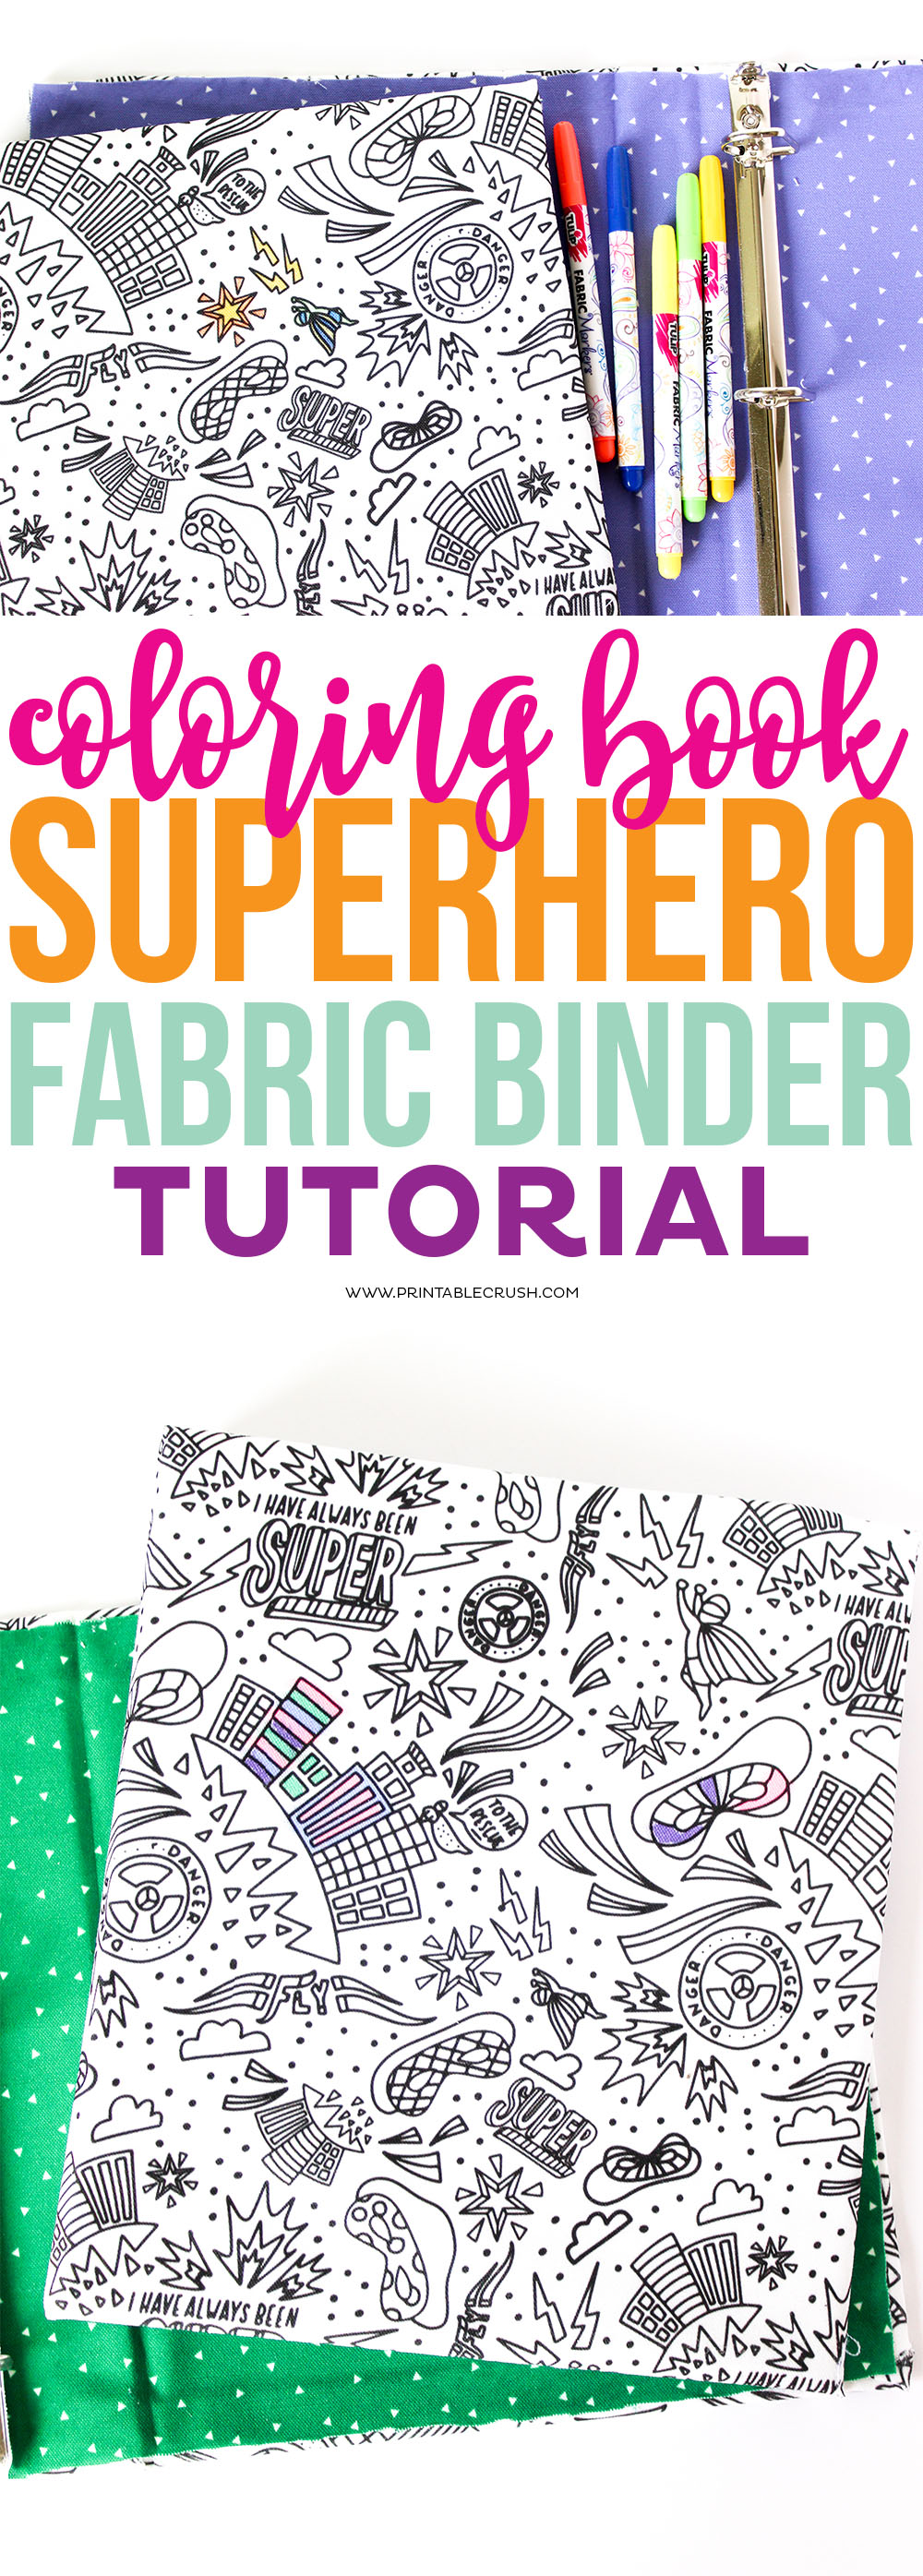 Get ready for back to school projects with this coloring book superhero fabric binder tutorial!